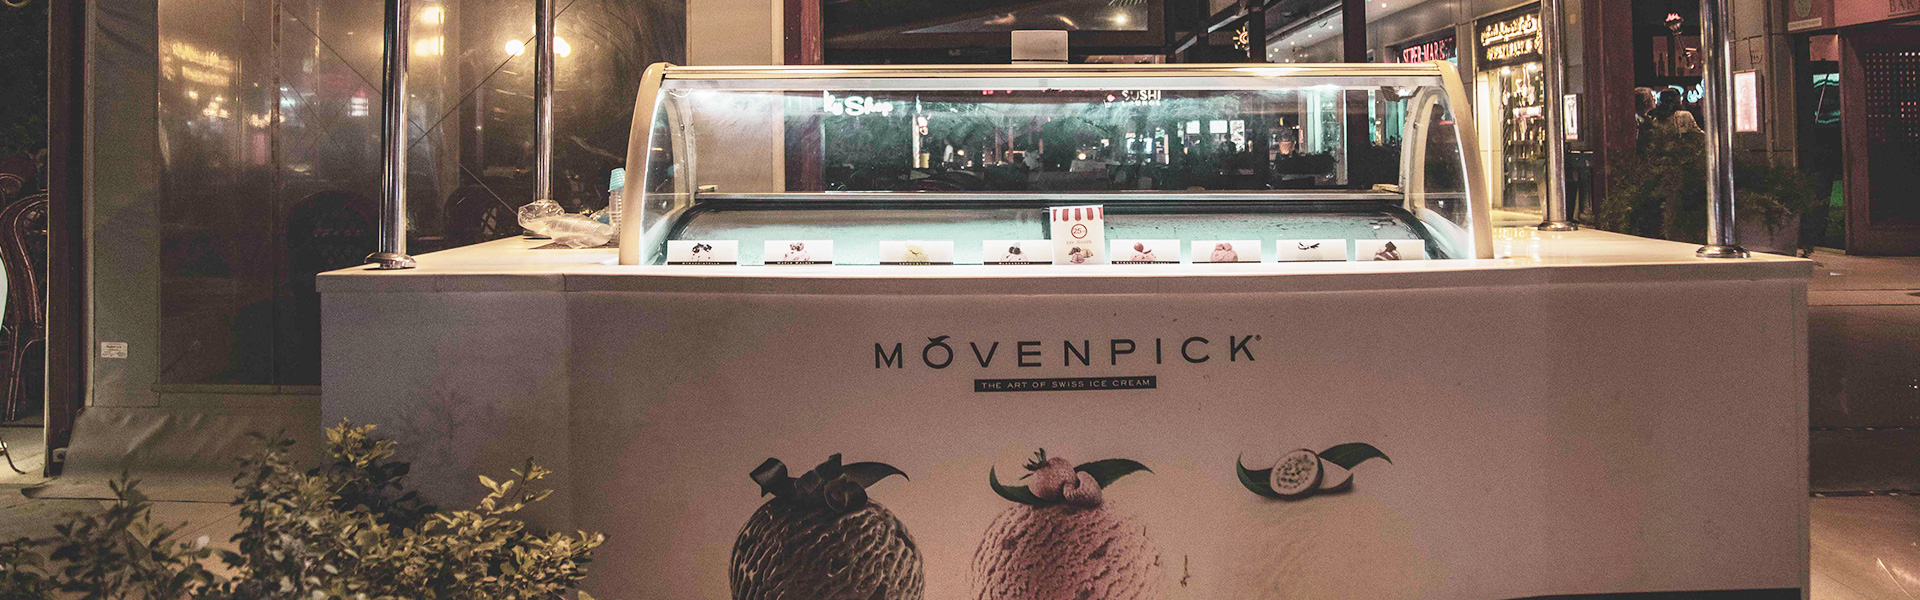 Mövenpick Ice-cream